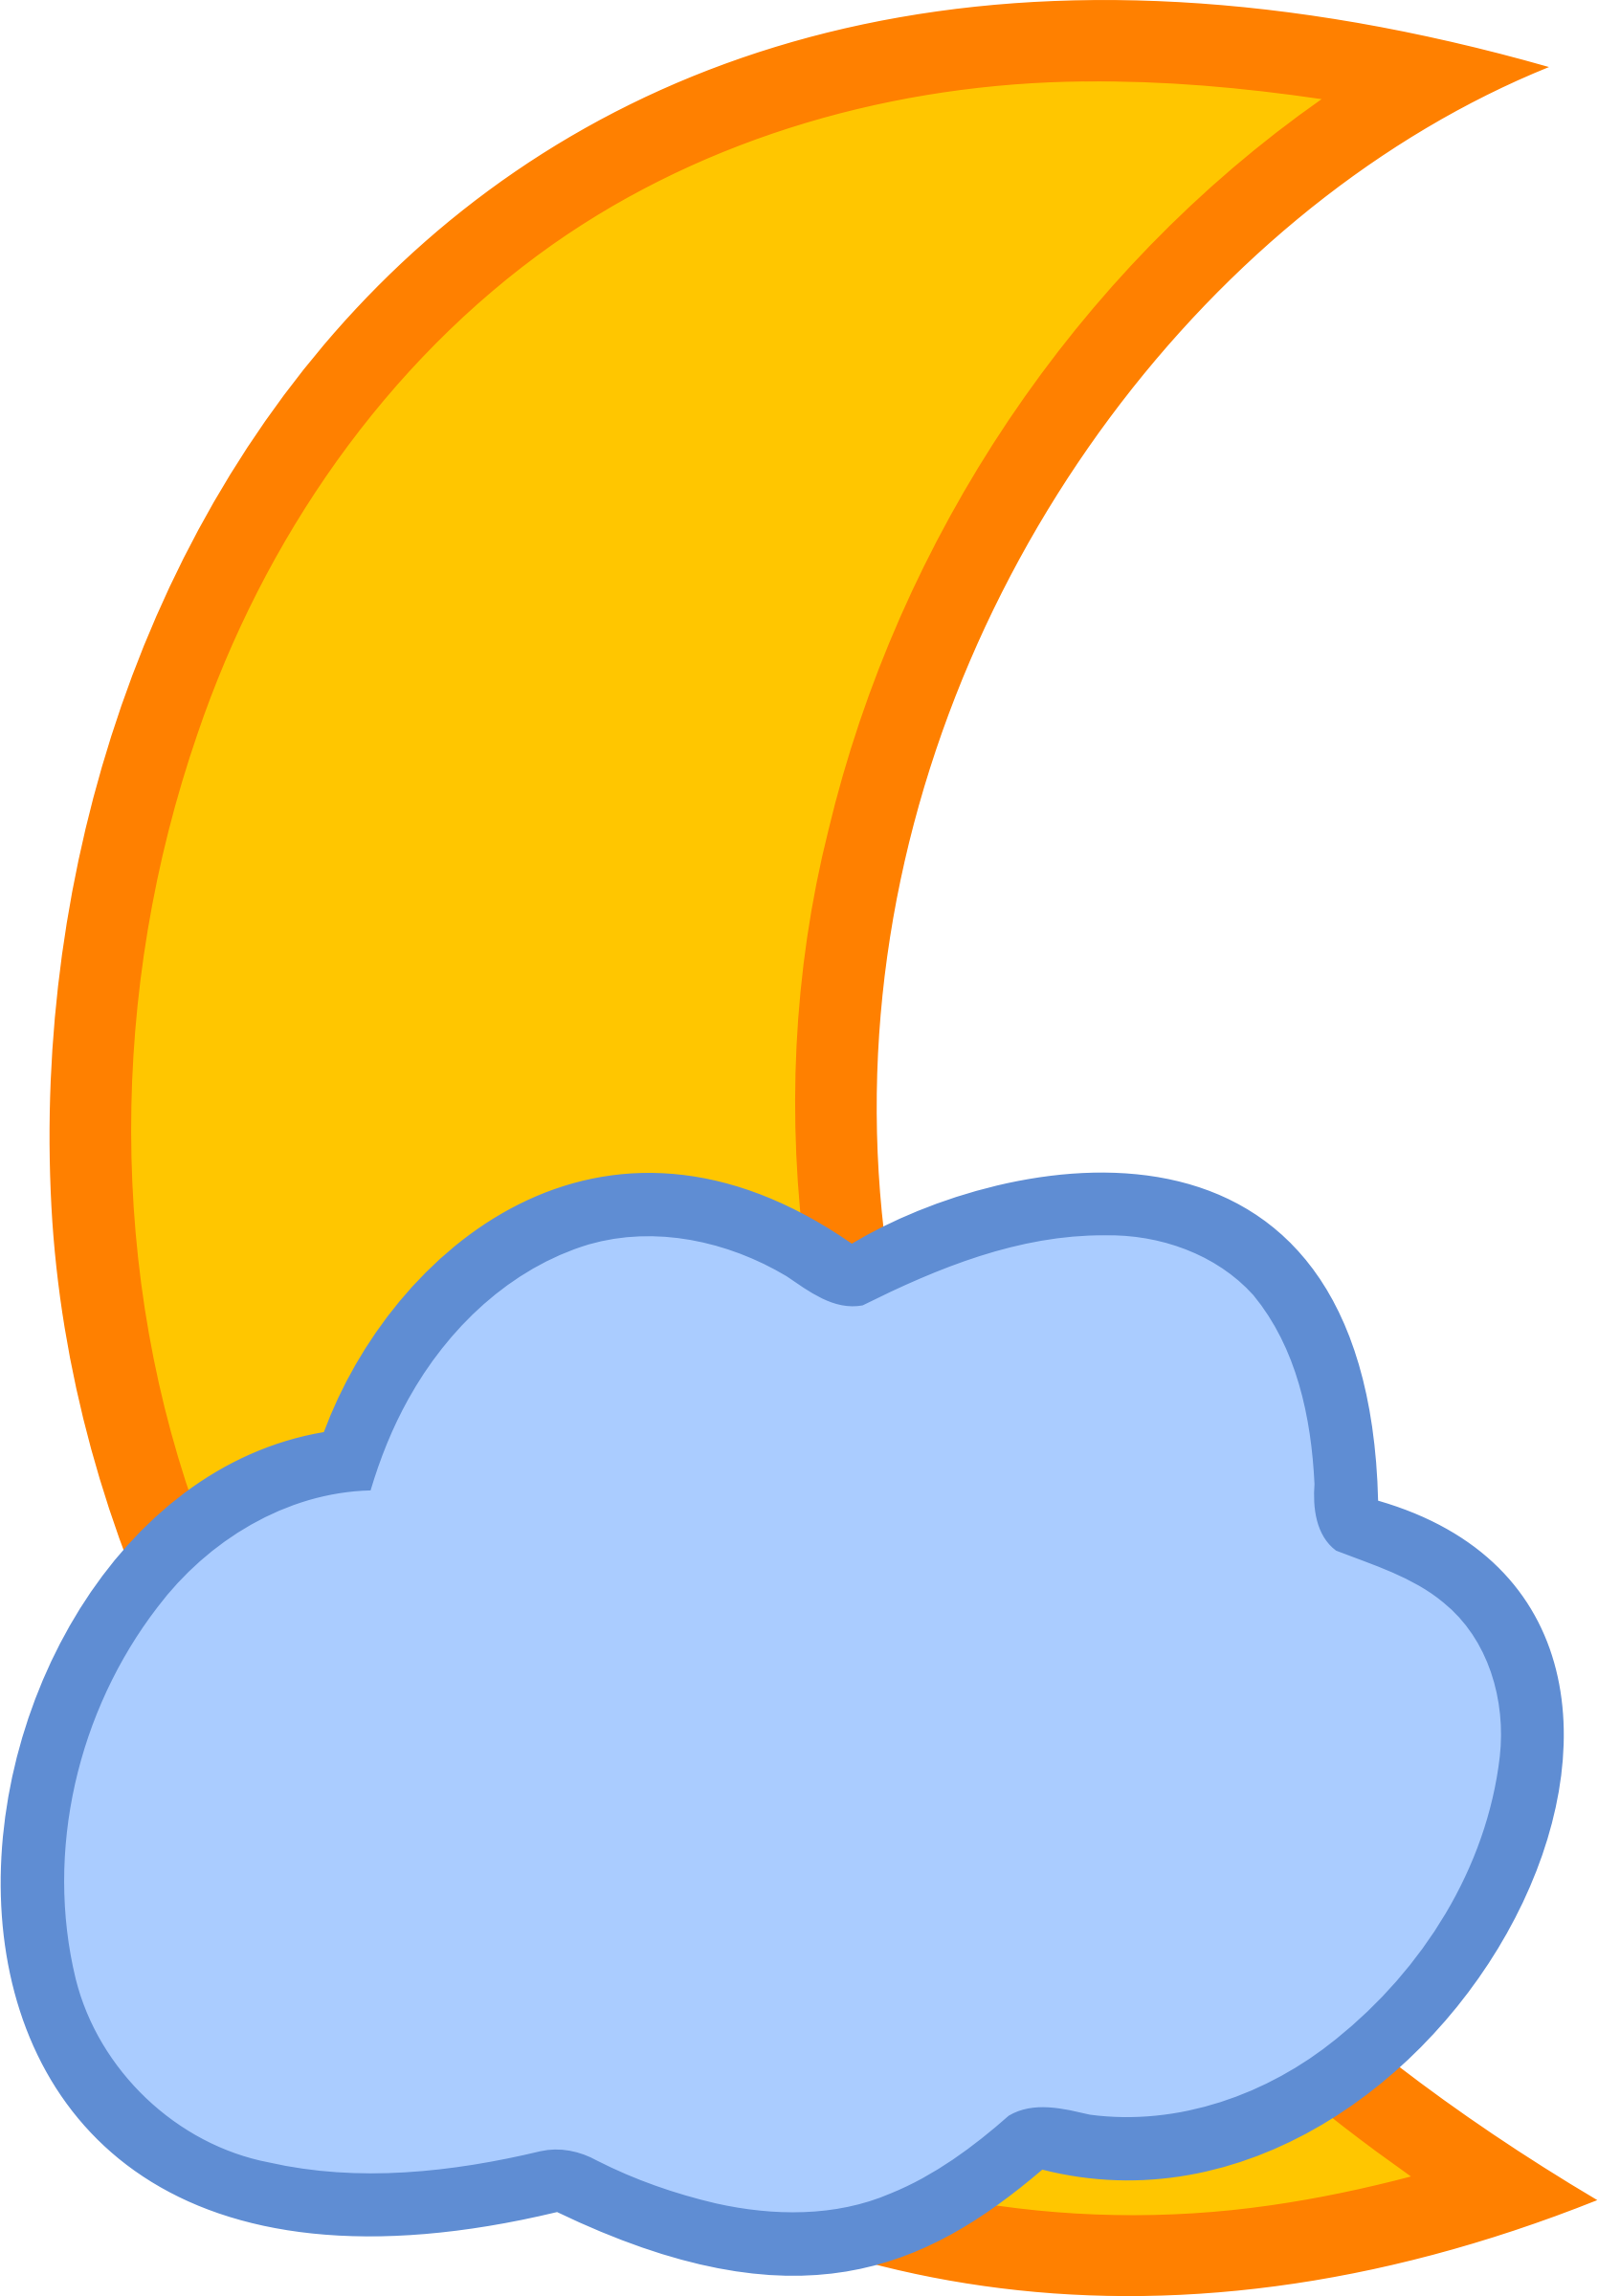 Cloud covered moon big. Orange clipart clouds